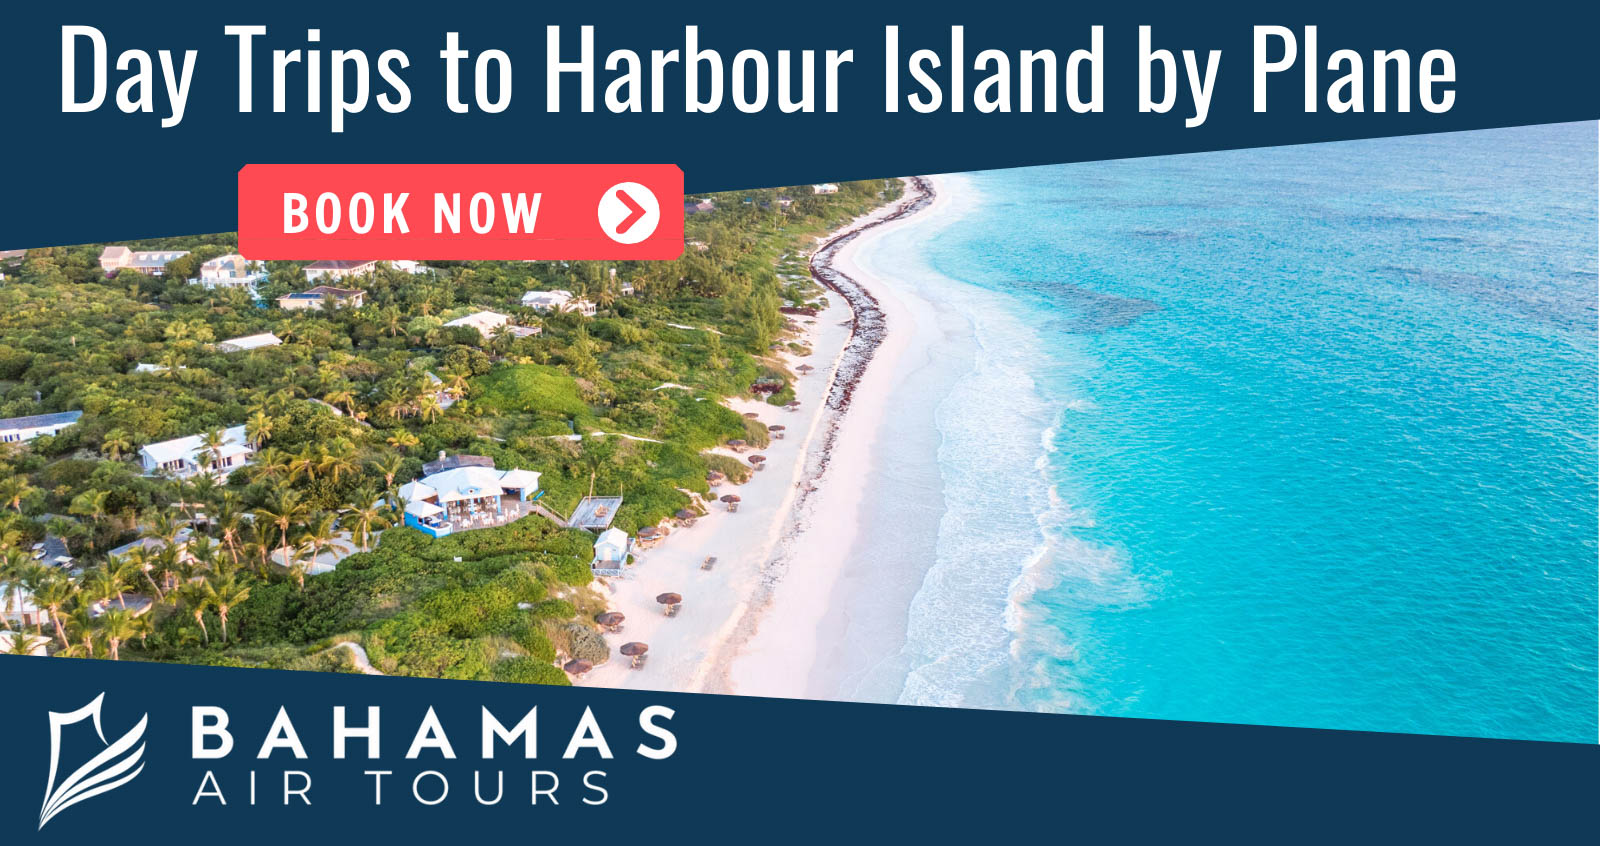 Harbour Island Day Trip from Nassau with Bahamas Air Tours, dunmore town and pink sands beach excursions by plane from Nassau Bahamas.